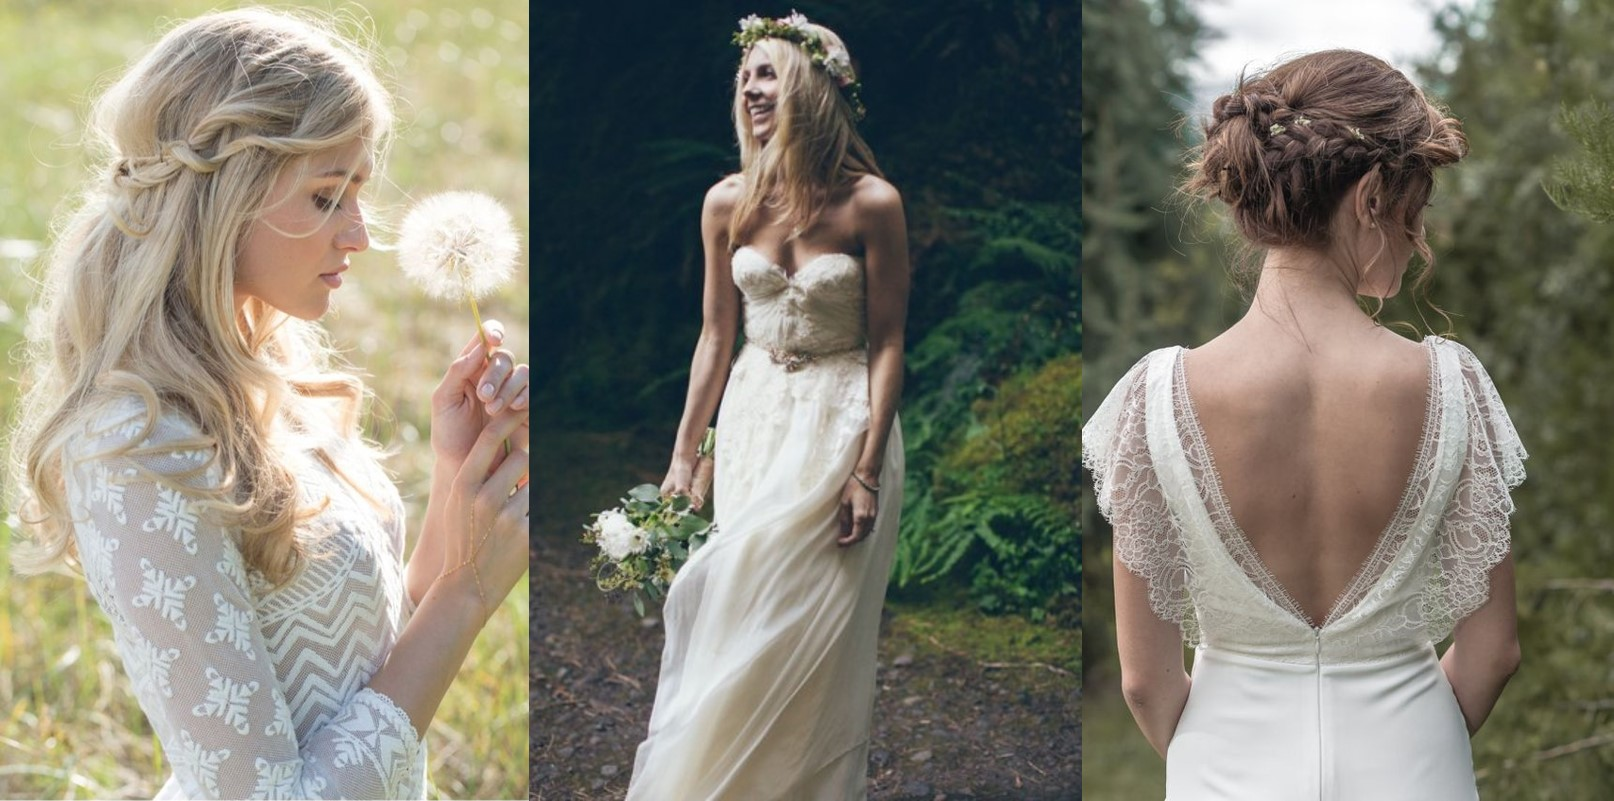 Matrimonio Stile Gipsy : La sposa boho chic tendenza wedding del